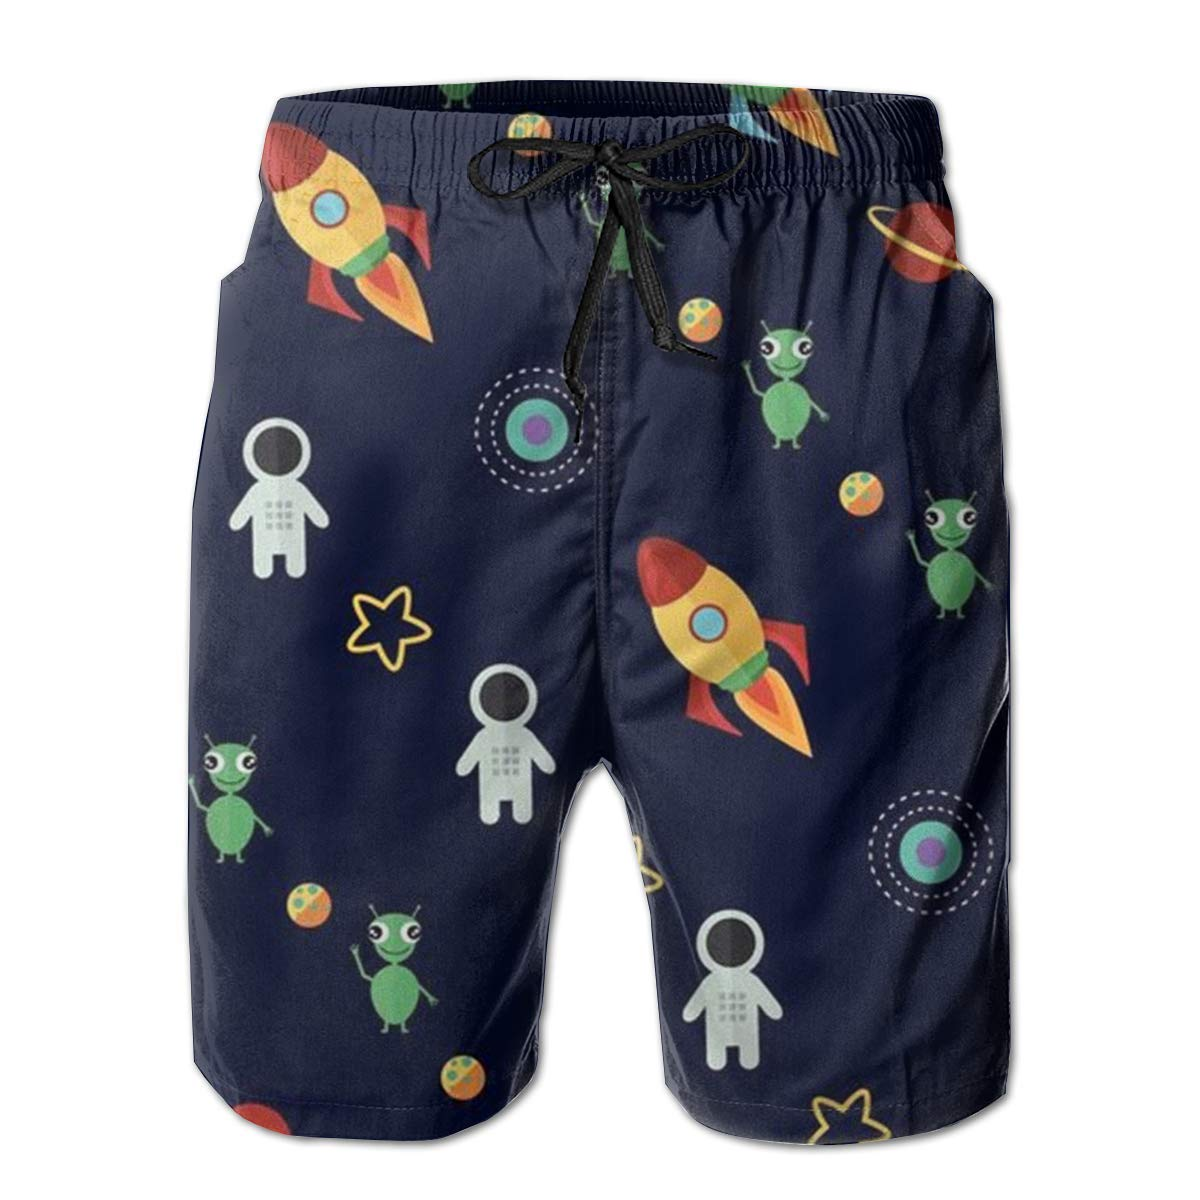 Rocket Novelty Sports Beach Shorts Running Board Shorts M-XXL Men Teens Gift